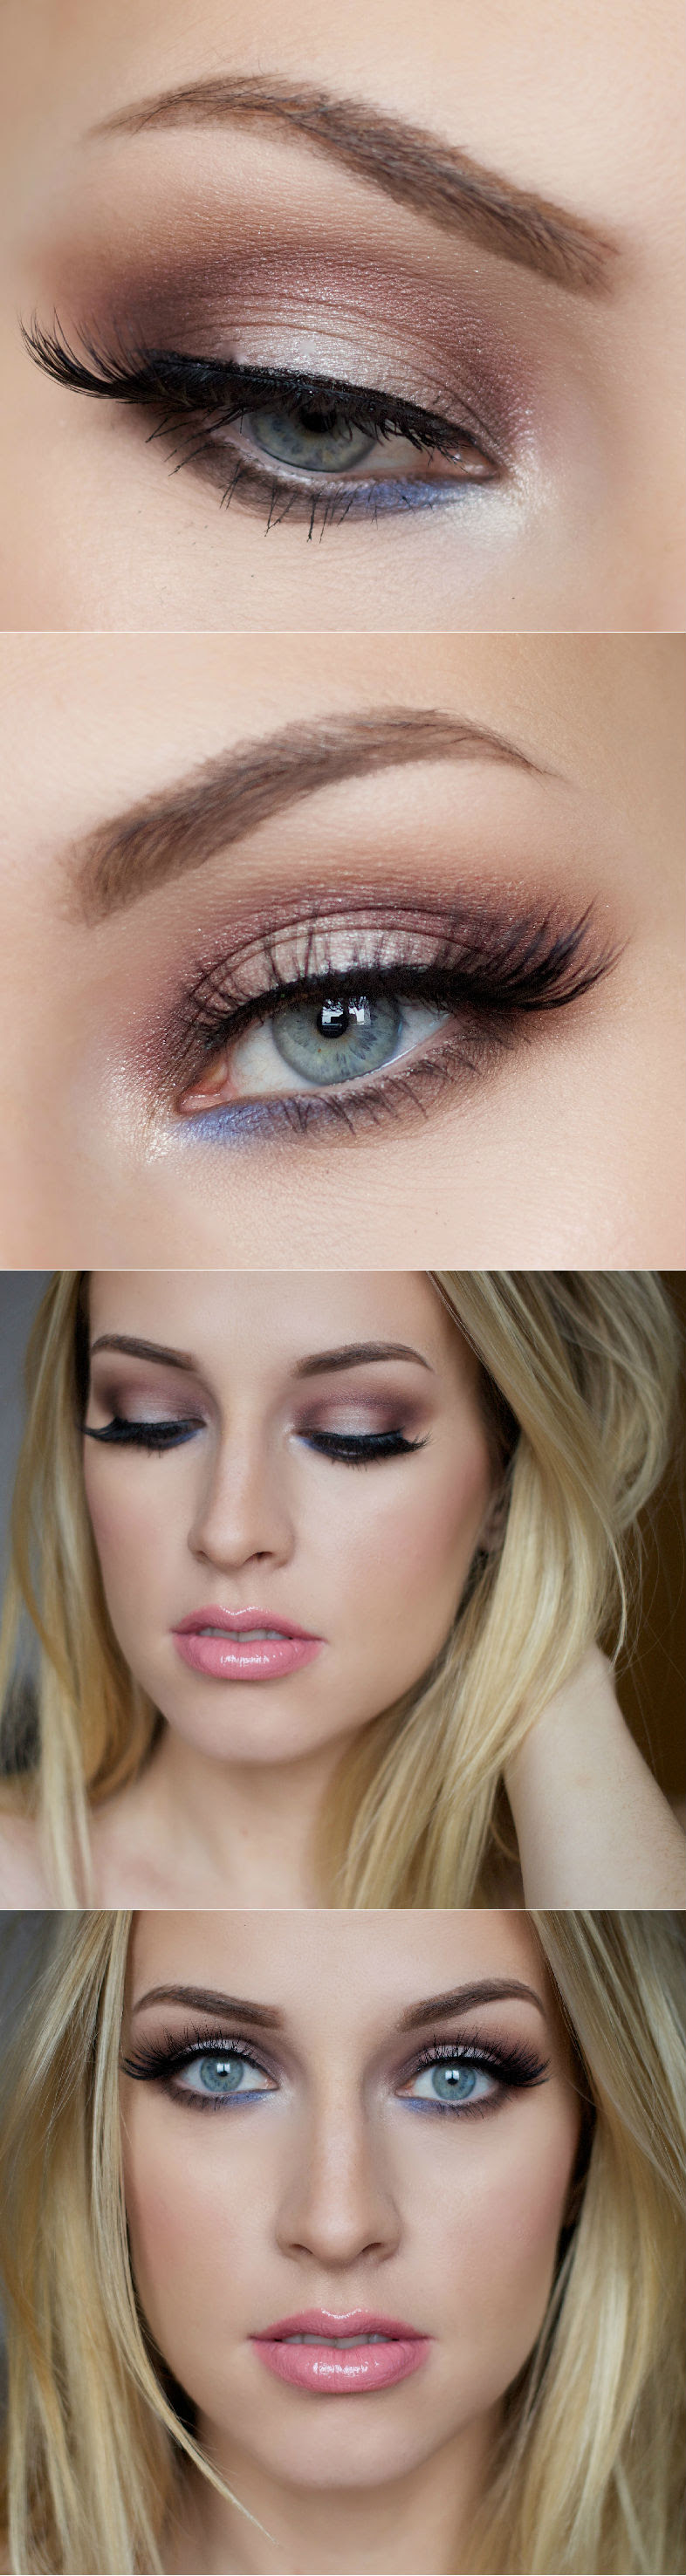 52 Perfect Hairstyles & Hair Color for Hazel Eyes We All Love